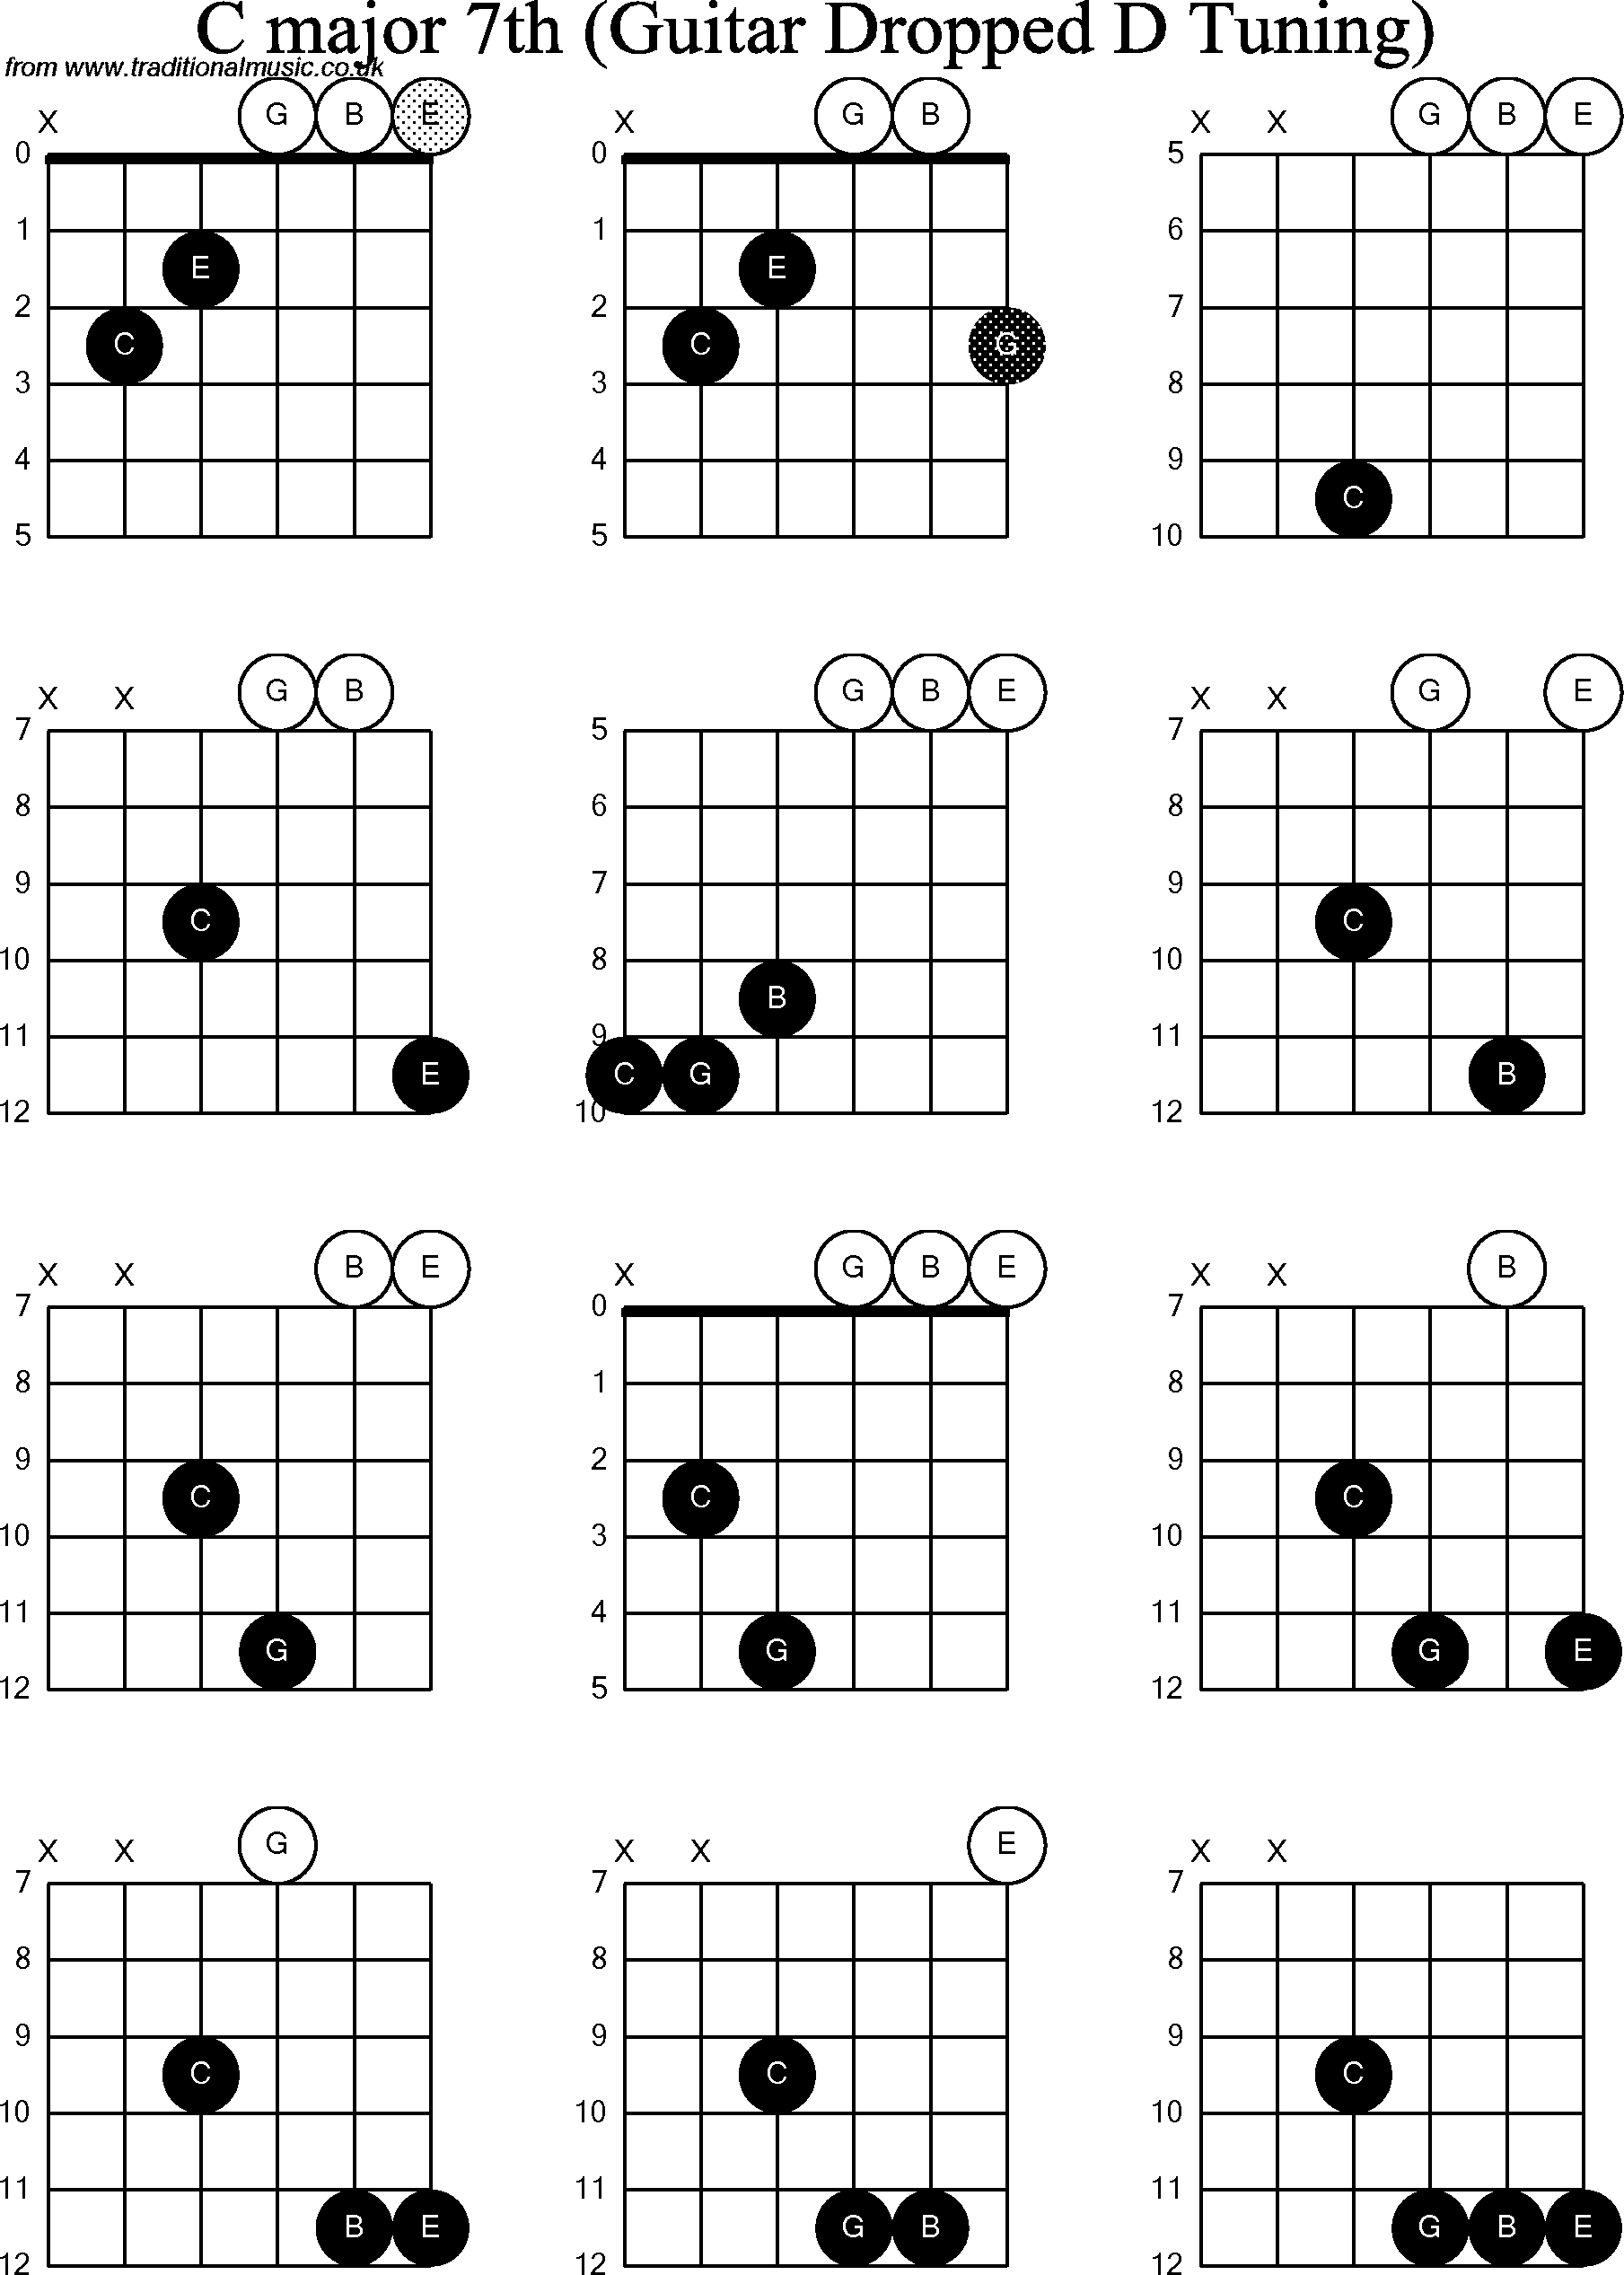 Chord diagrams for dropped d guitardadgbe c major7th chord diagrams for dropped d guitardadgbe c major7th hexwebz Gallery